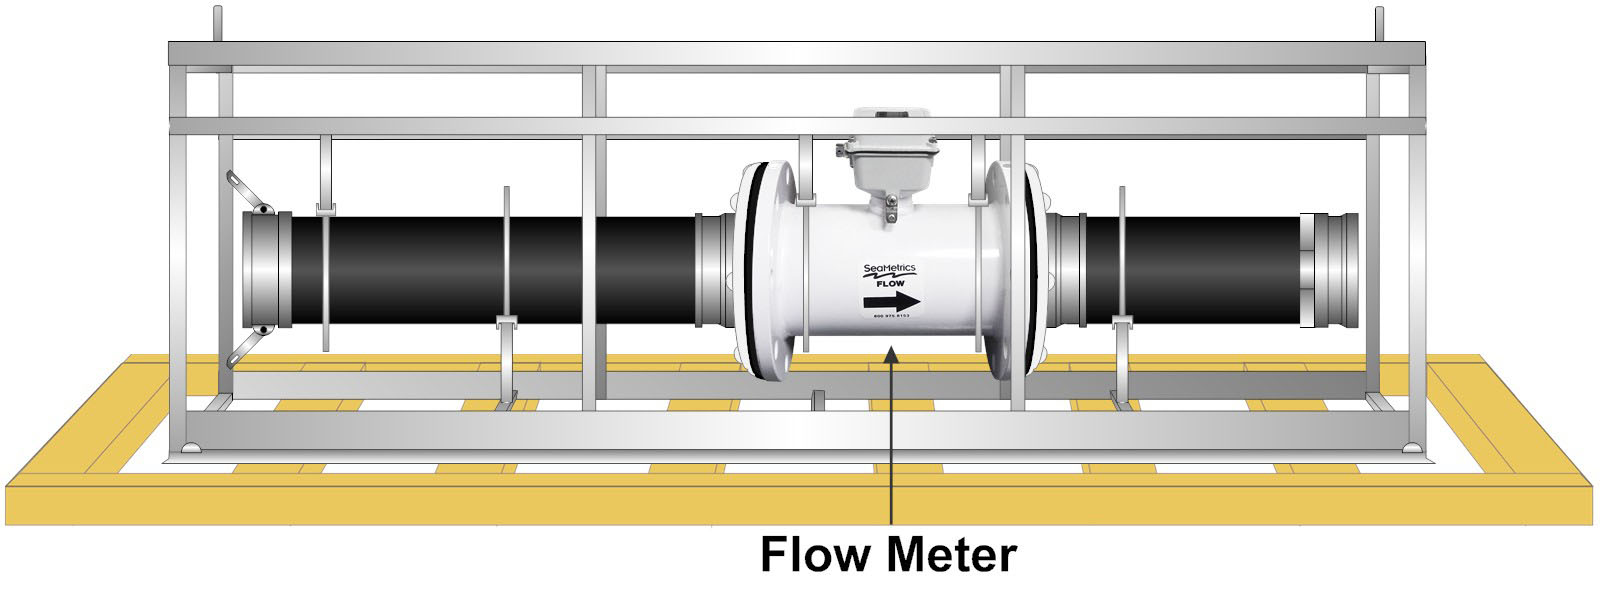 Flow Meter in Cage on Skid